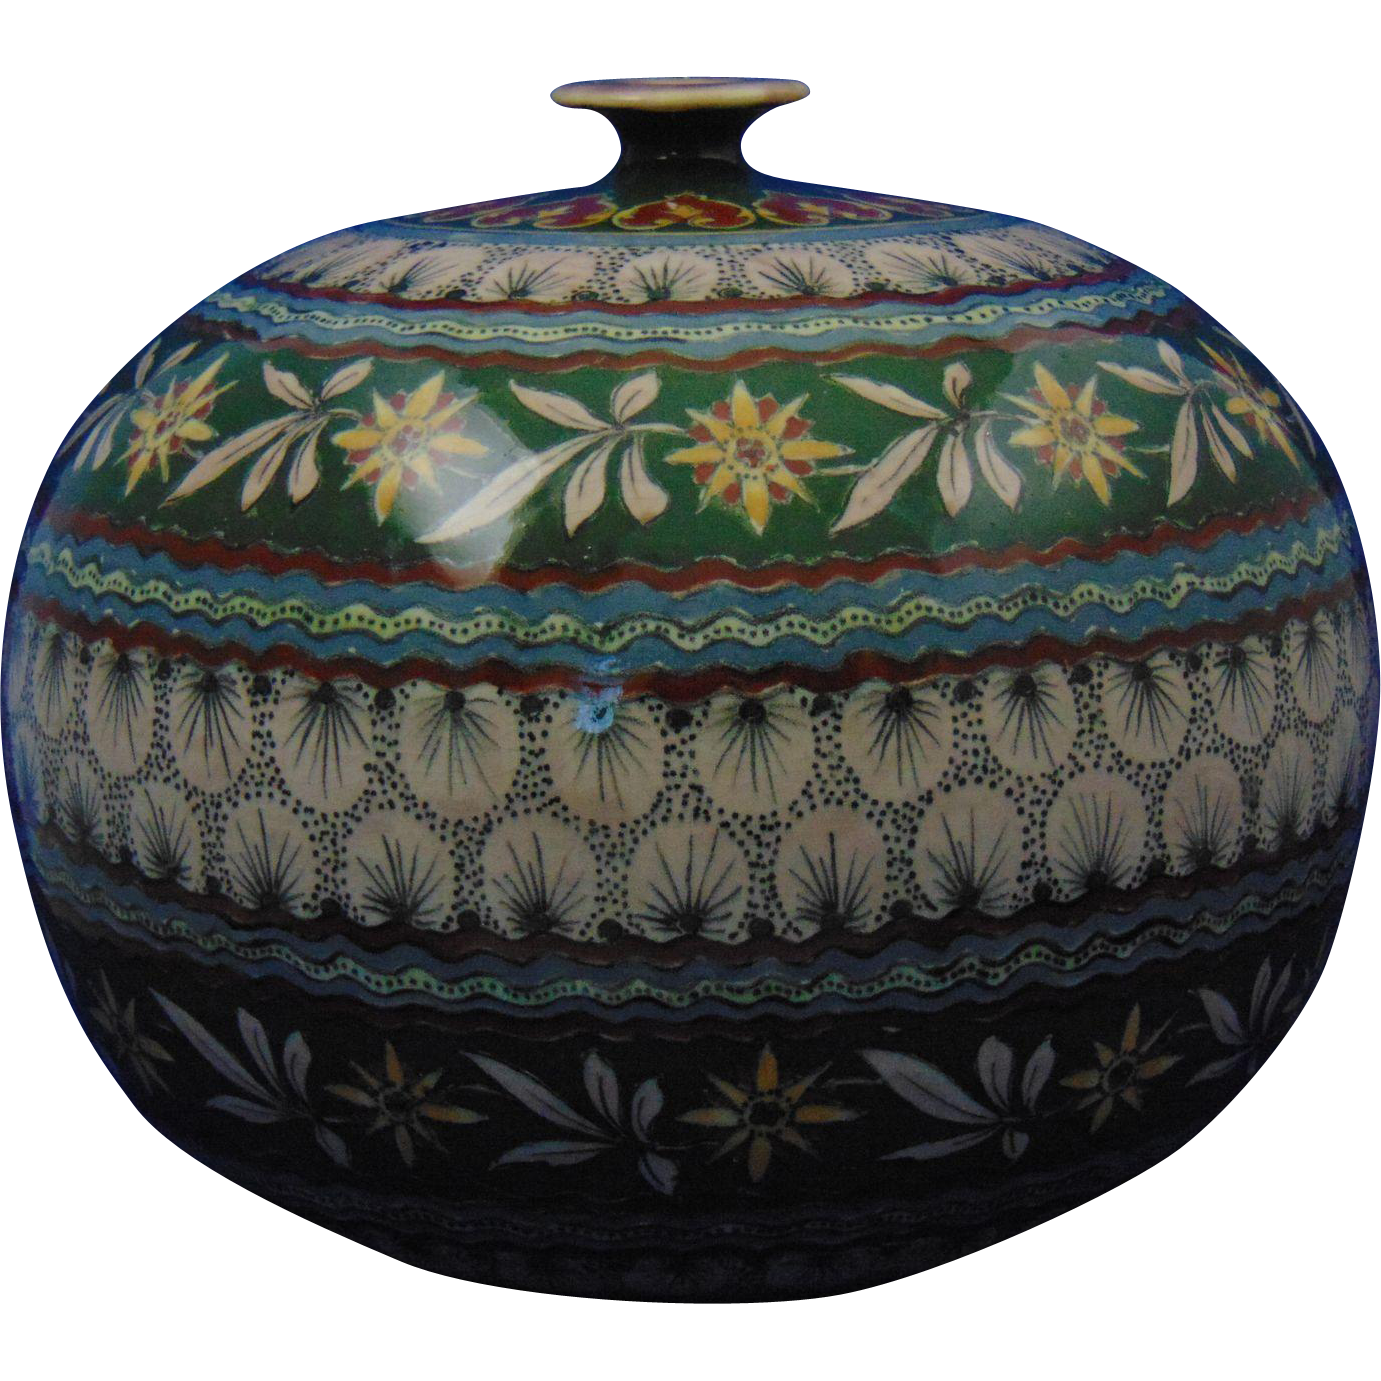 Royal Bonn Germany Old Dutch Design Vase (c.1890-1923)